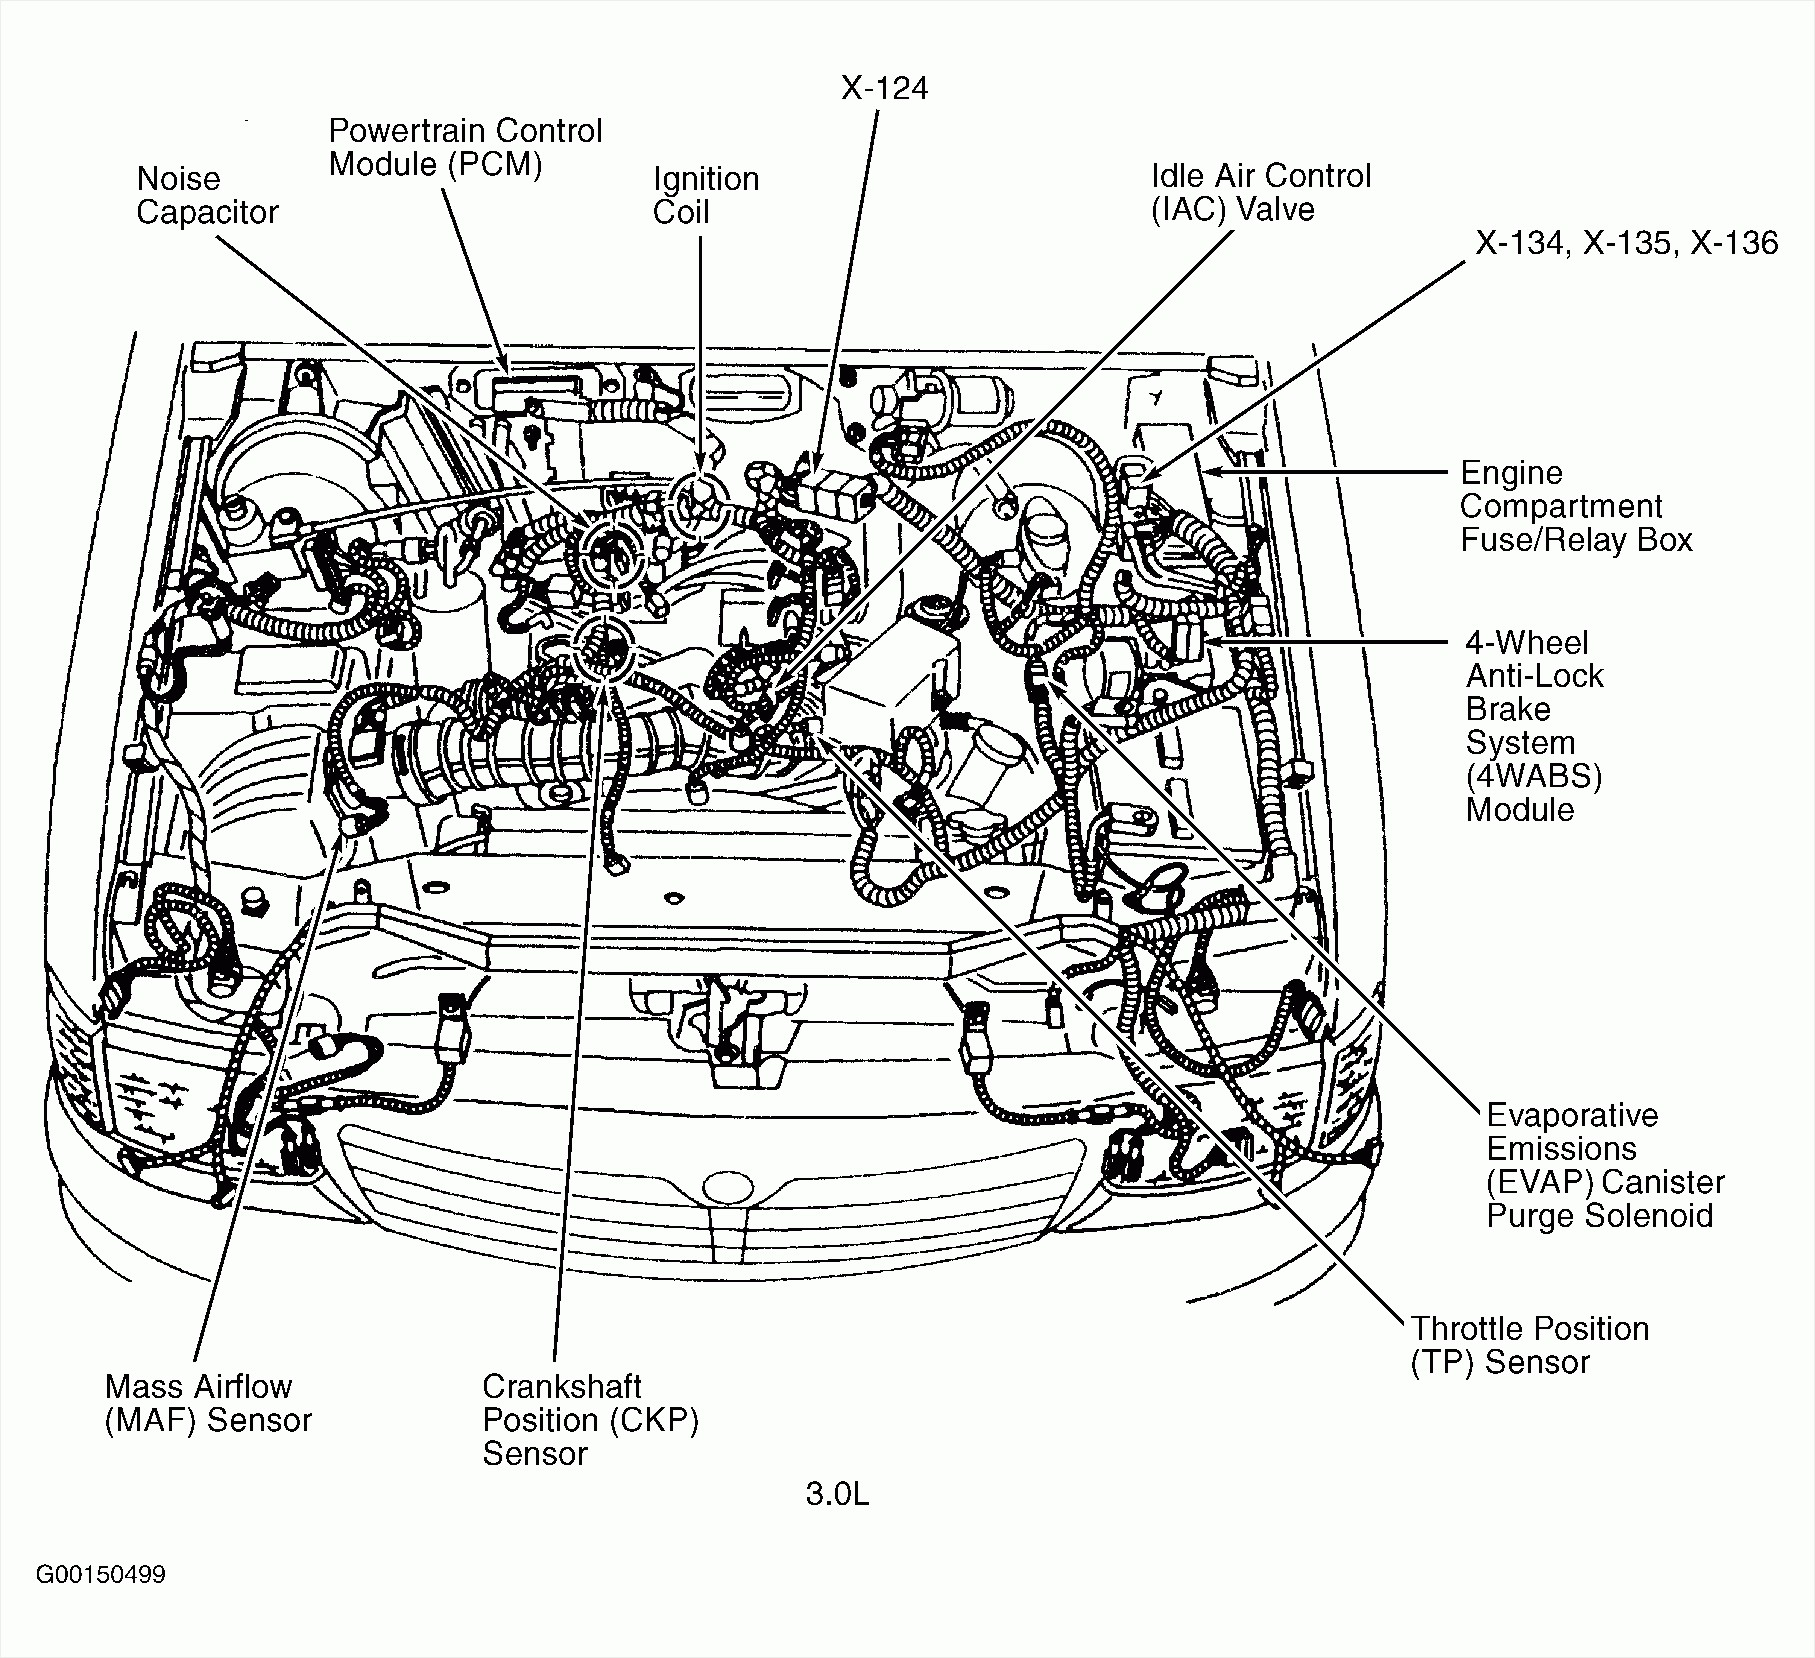 hight resolution of 1994 ford 4 0 engine diagram fan wiring diagram used 1994 ford 4 0 engine diagram